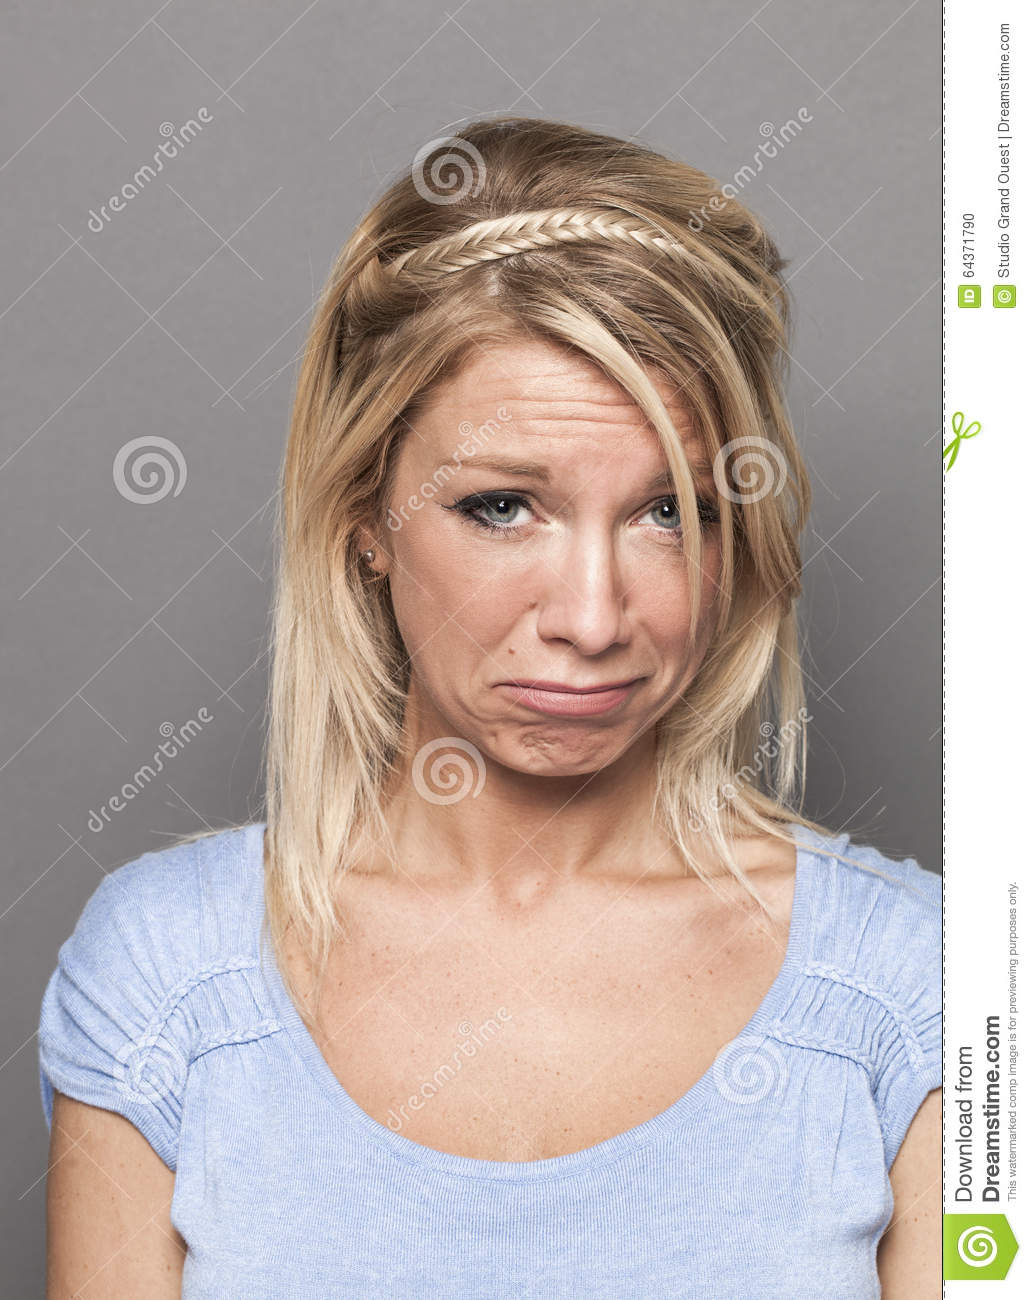 Blond Crying Teen Girl With Long Hair And Blue Eye Stock